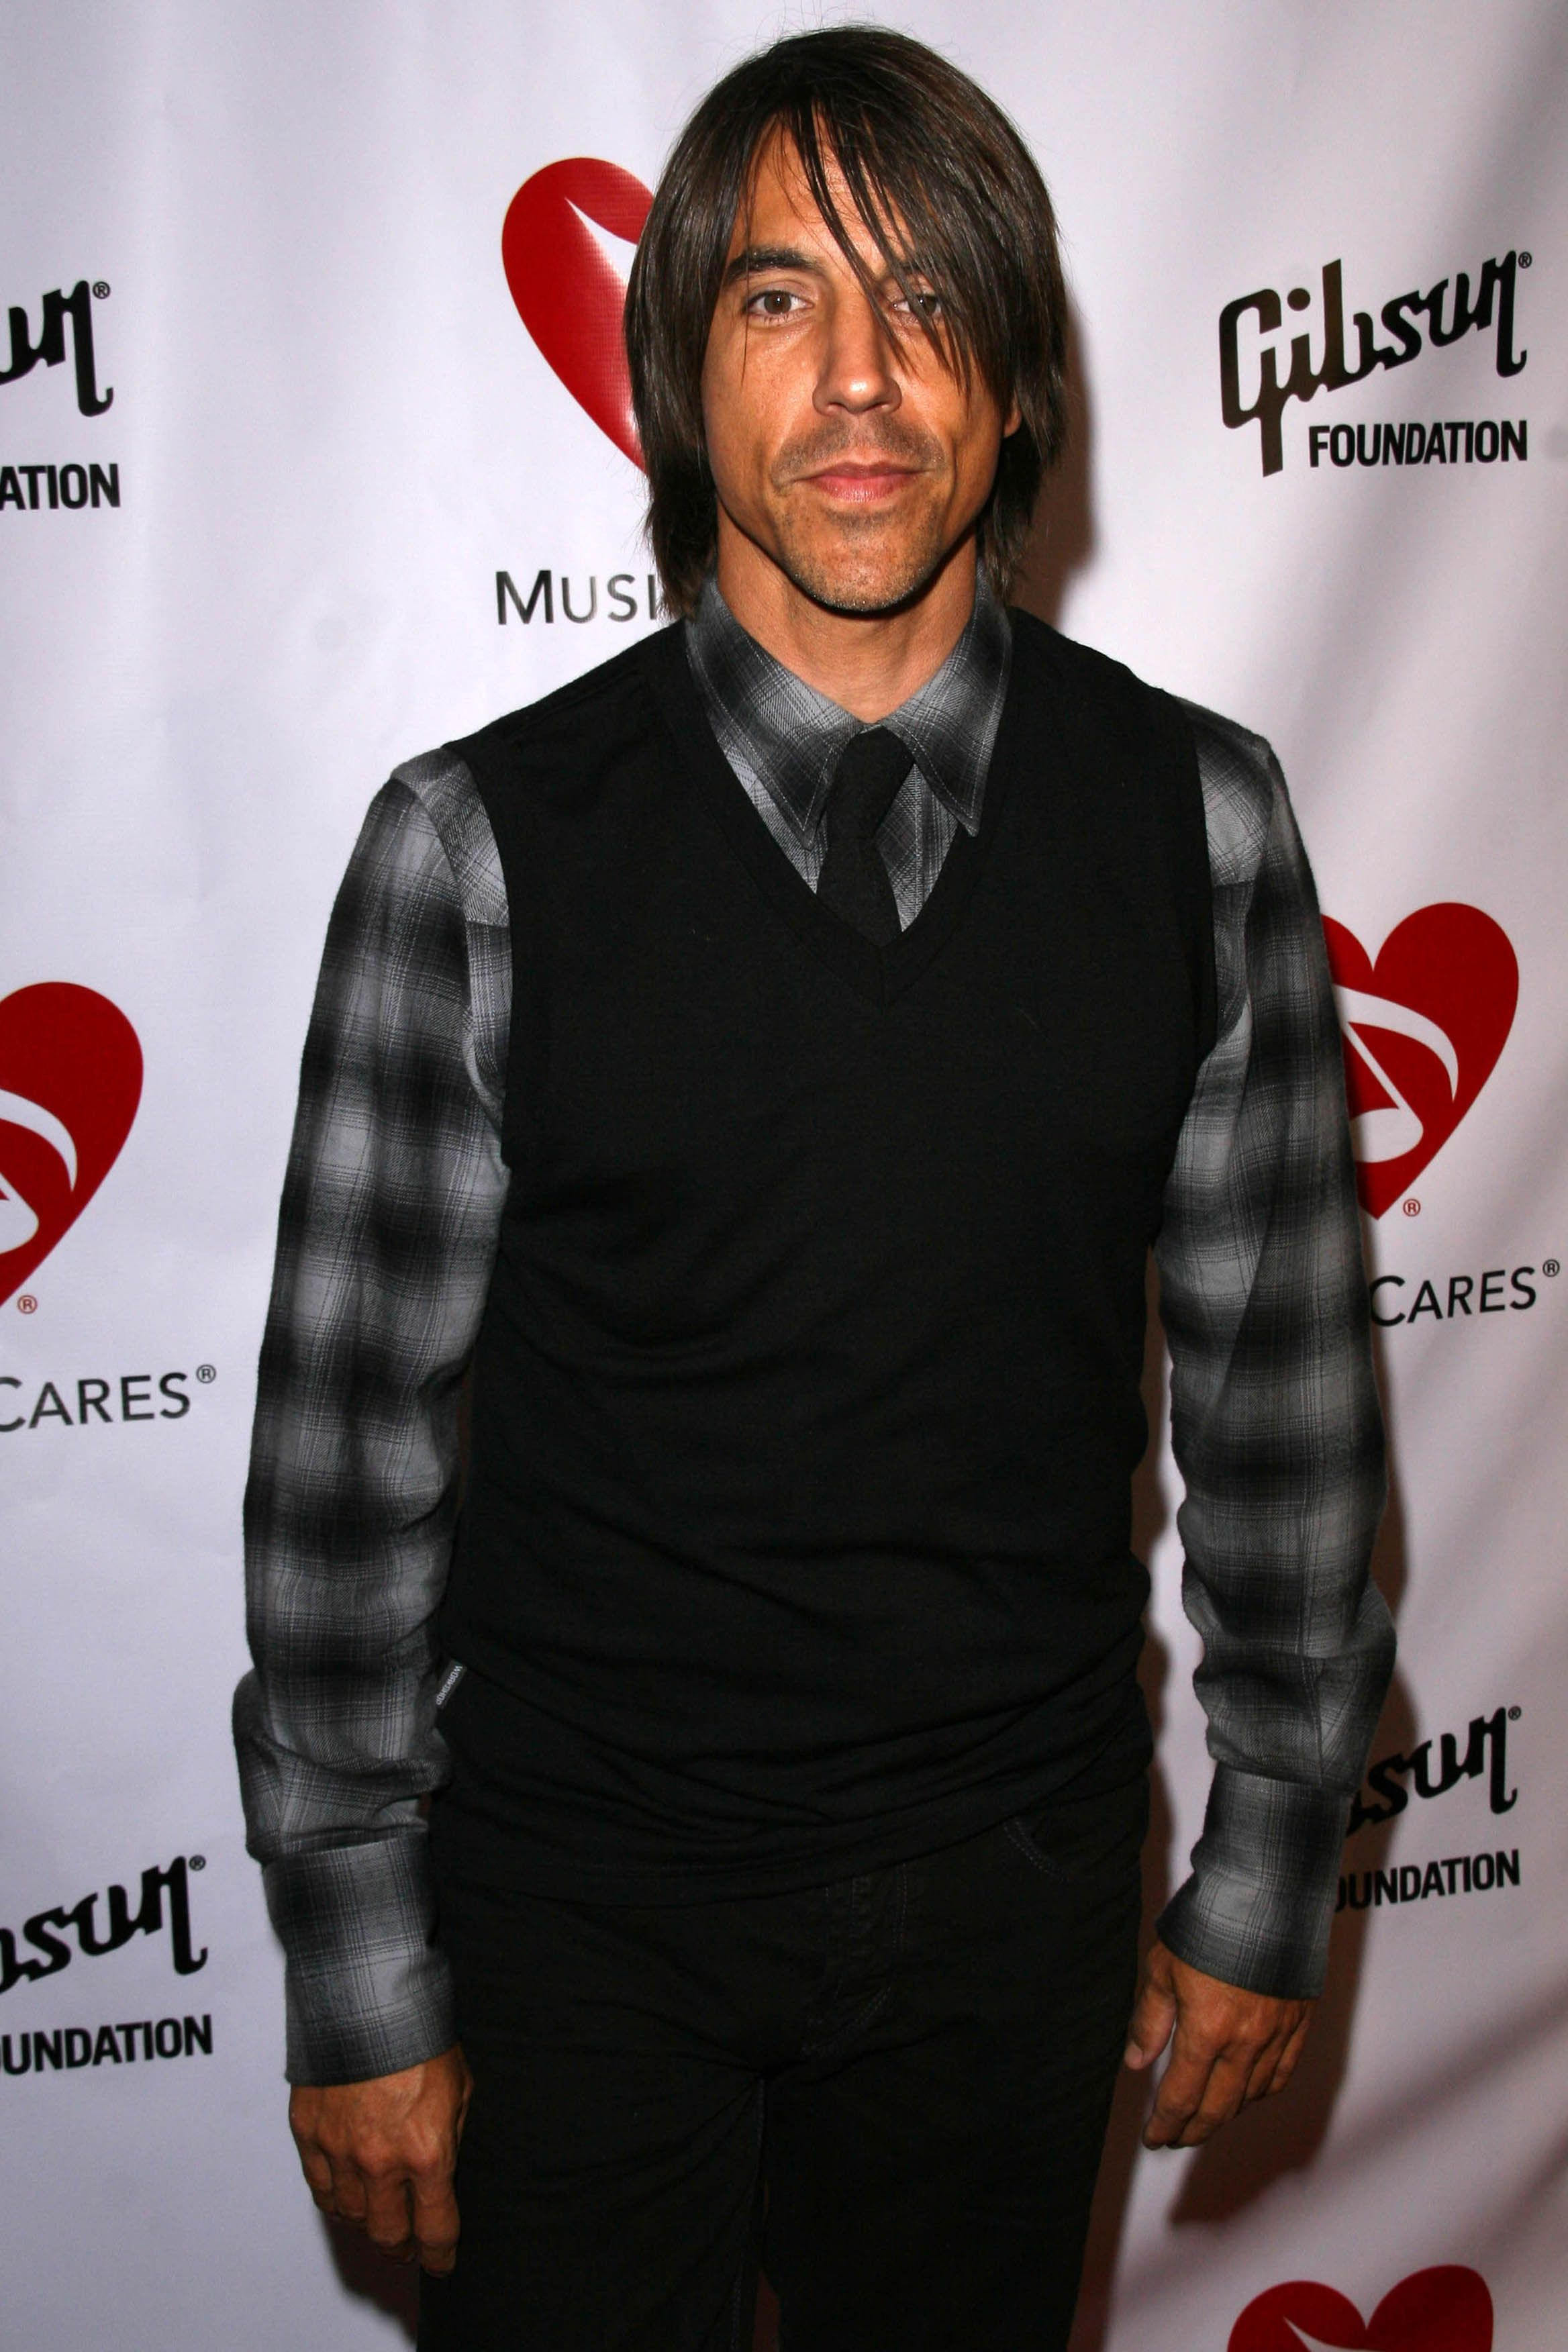 Anthony Kiedis wears a black sweater vest and gray plaid shirt at an event.